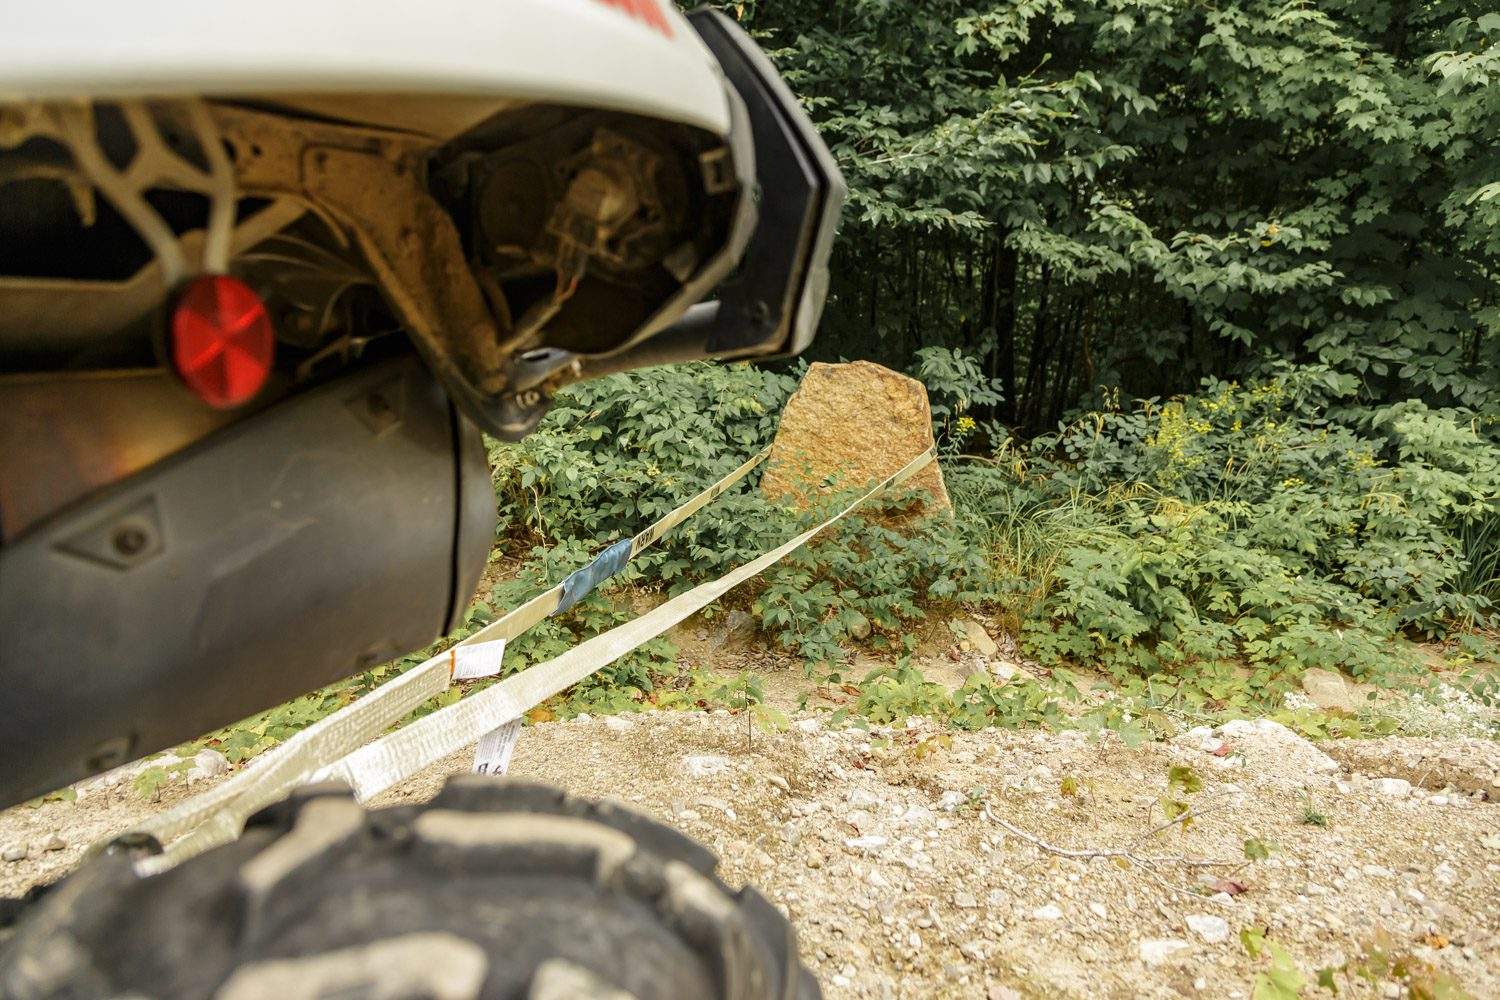 How to properly use a winch